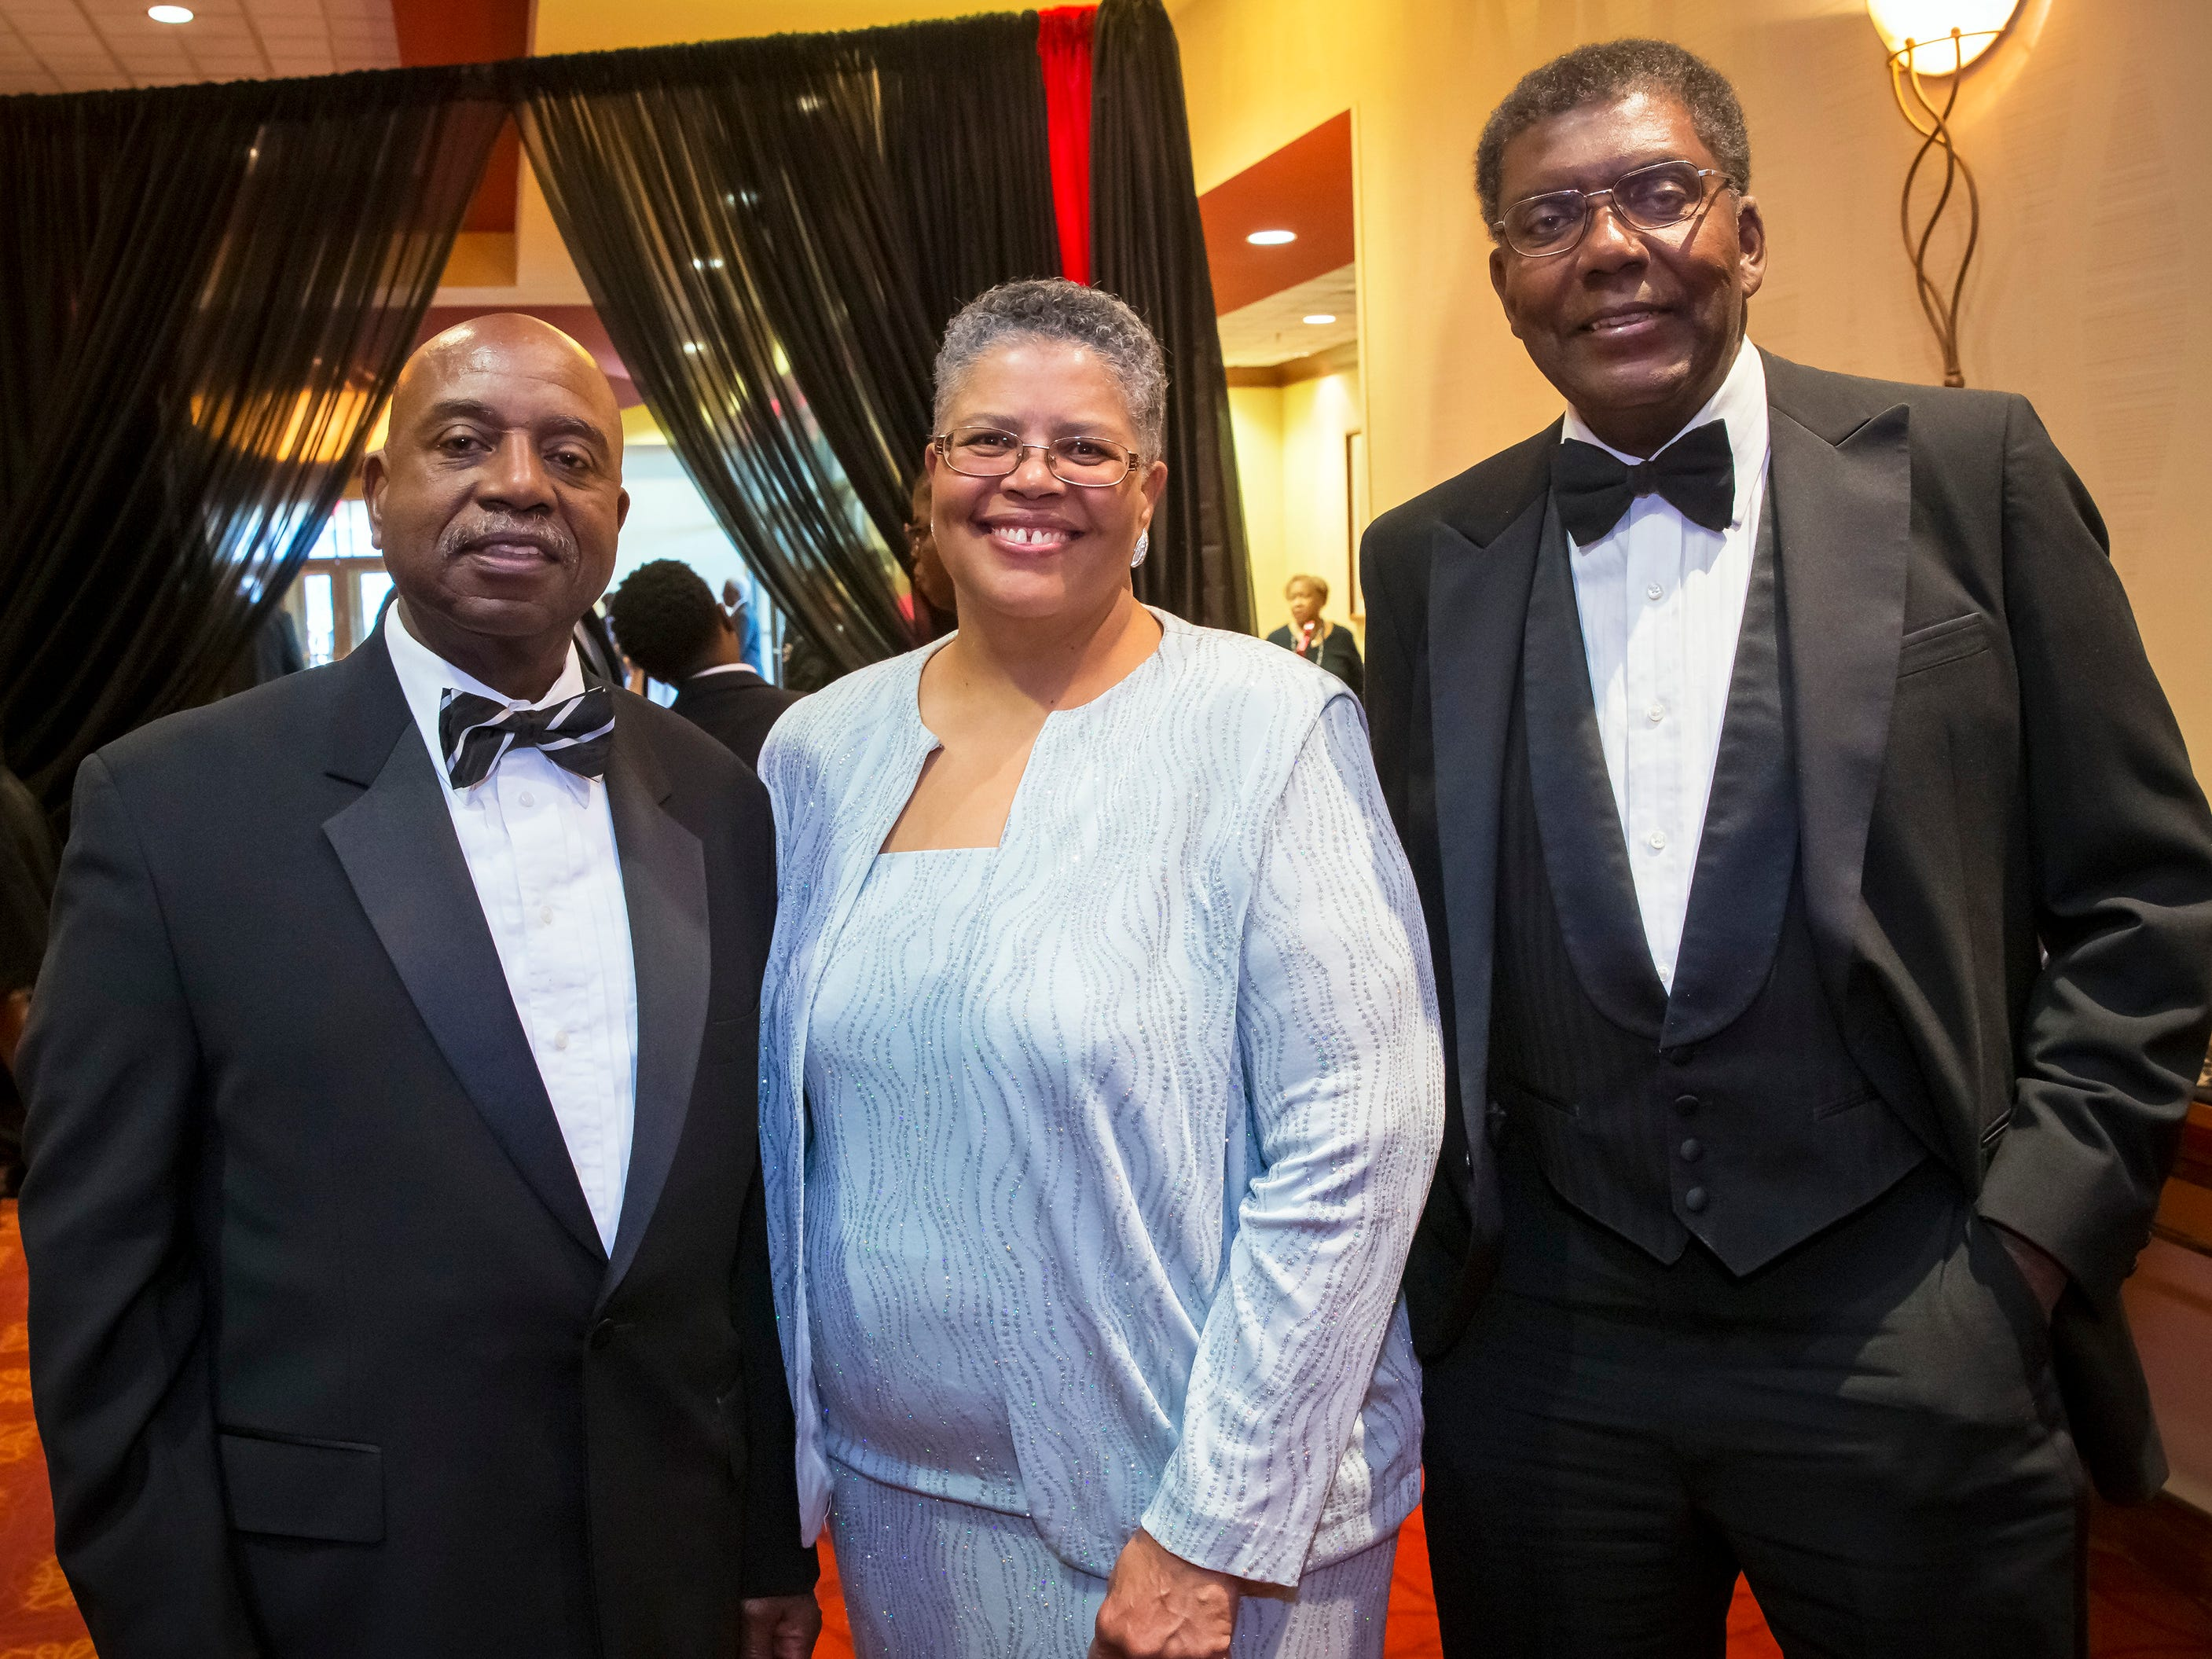 Sam Christy, Evelyn Ellis and James A. Powell, Jr. at the Murfreesboro Alumni Chapter of Kappa Alpha Psi Fraternity Beautillion held at Embassy Suites.